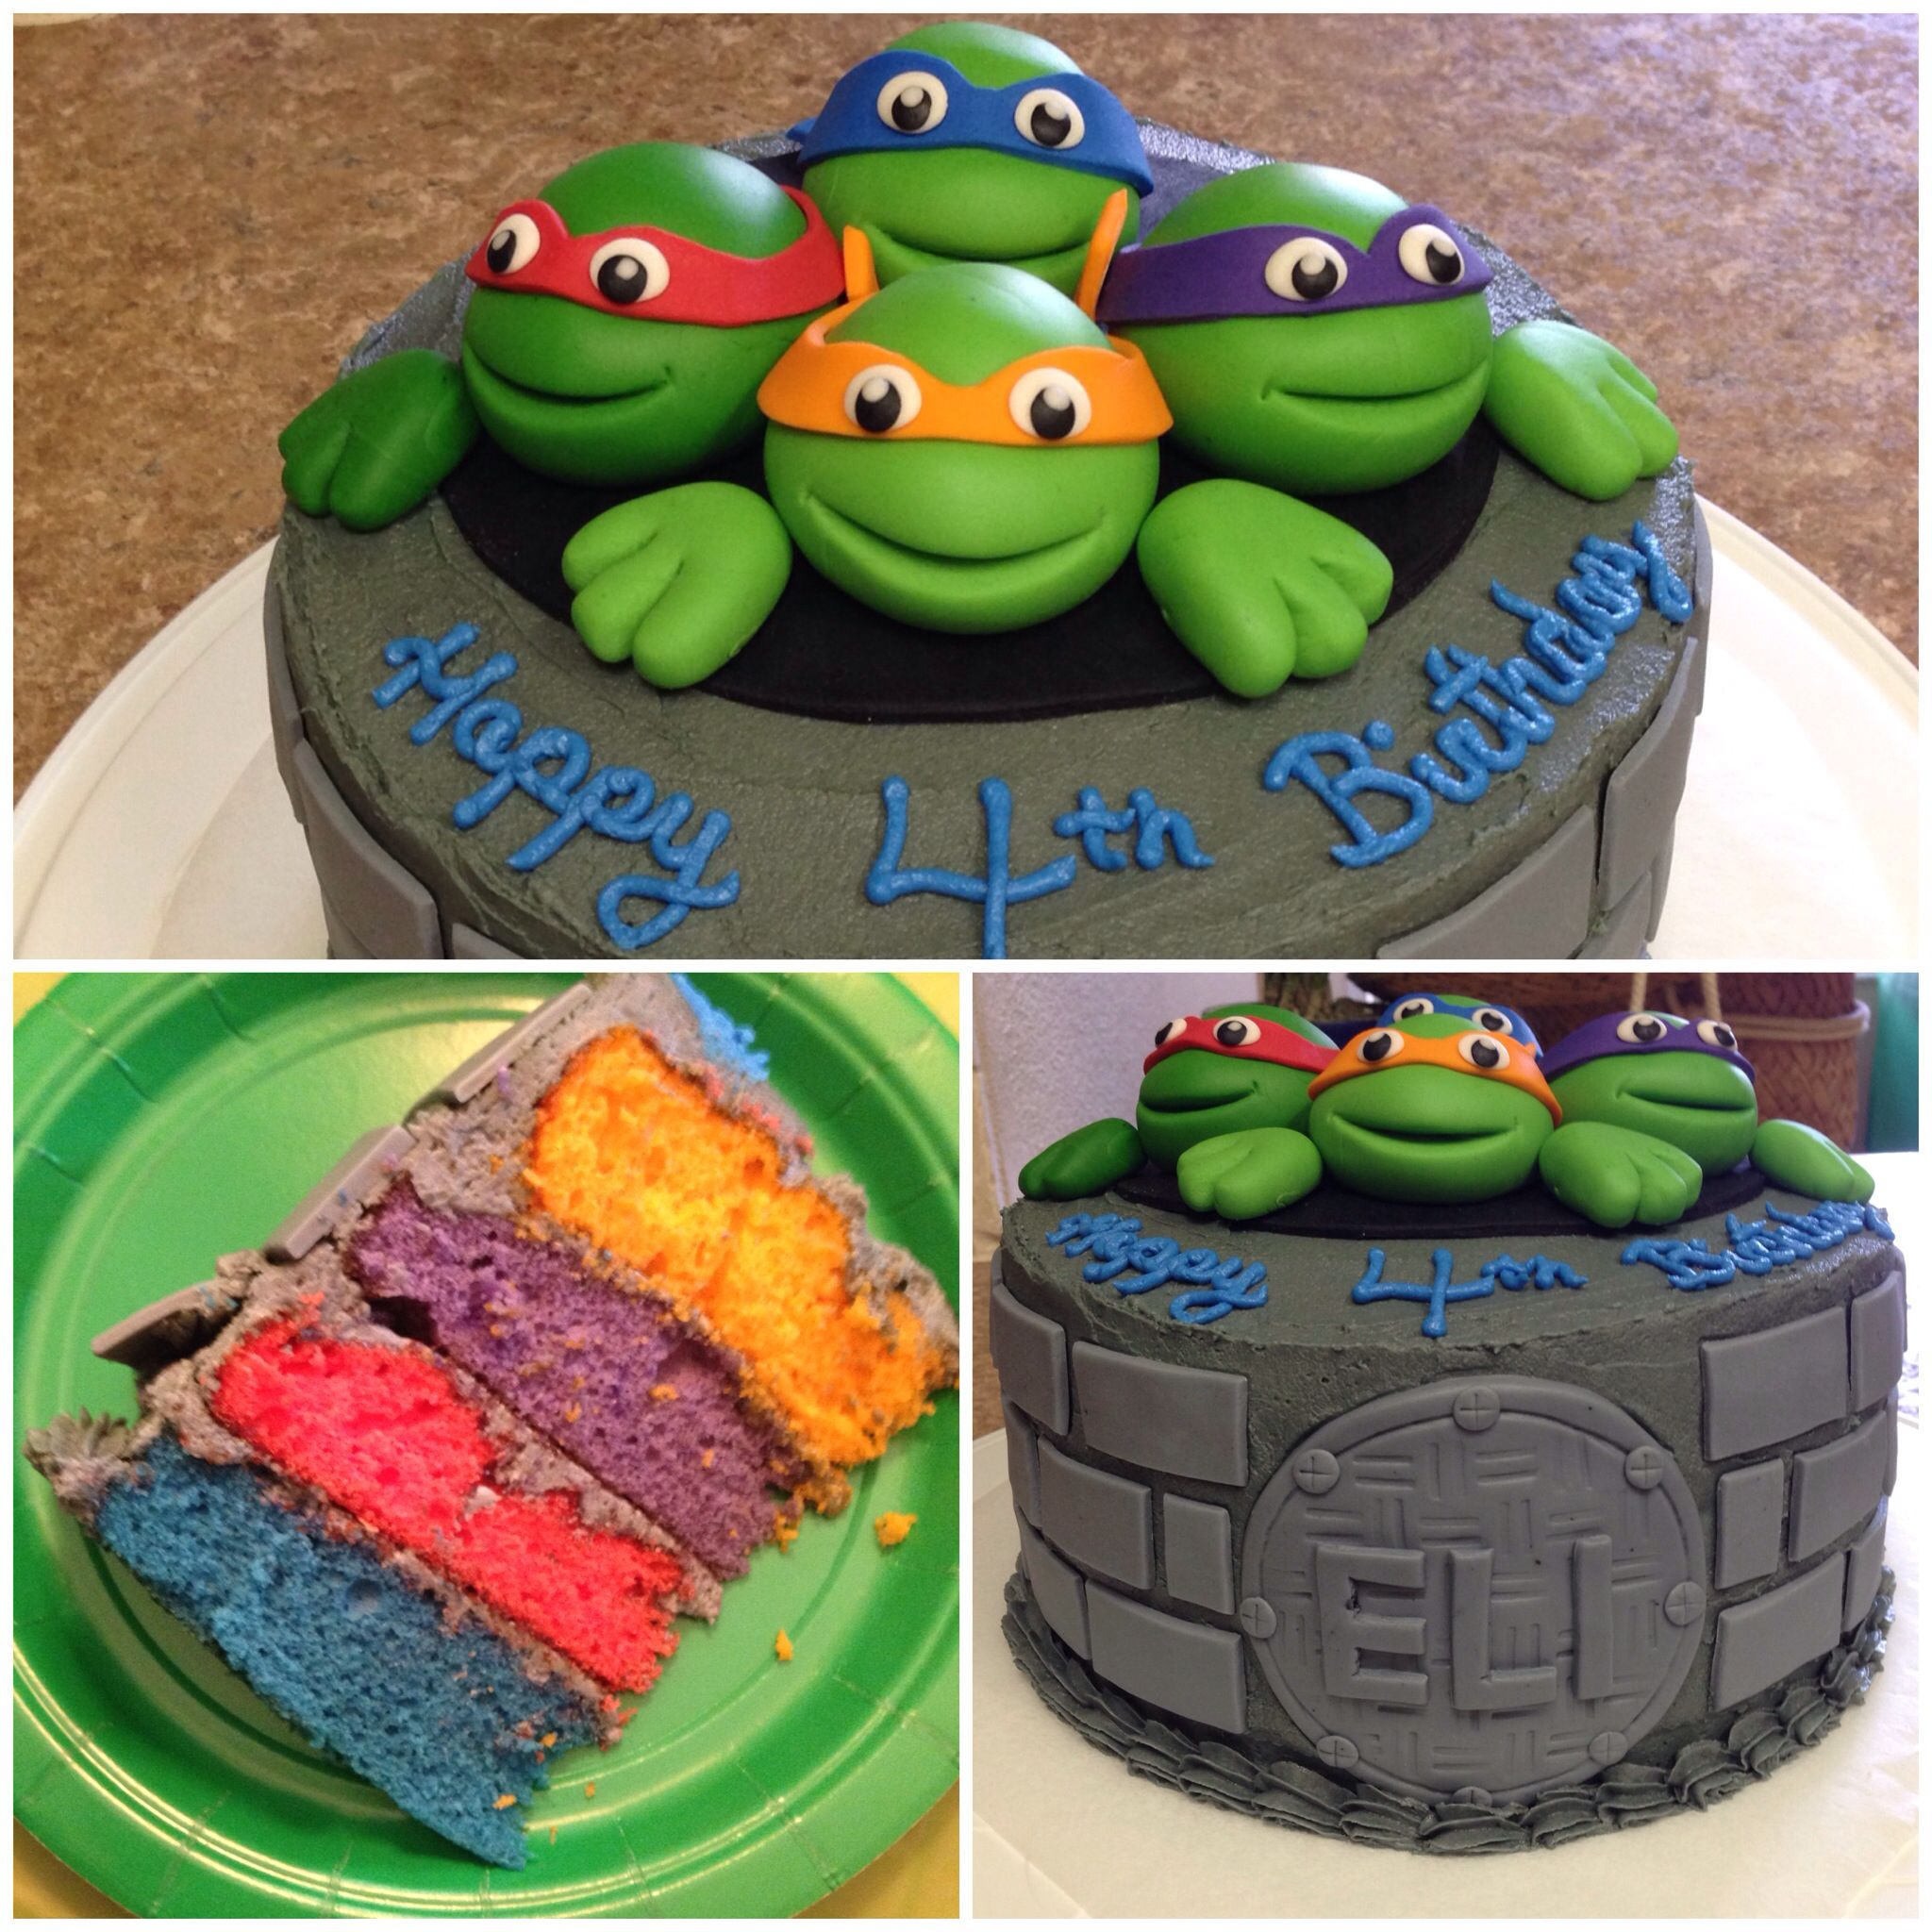 Tmnt Cake I Made For My Son S 4th Birthday I Used Fondant For The Turtles And Homemade Buttercream For Ninja Turtle Birthday Cake Tmnt Cake Ninja Turtle Cake